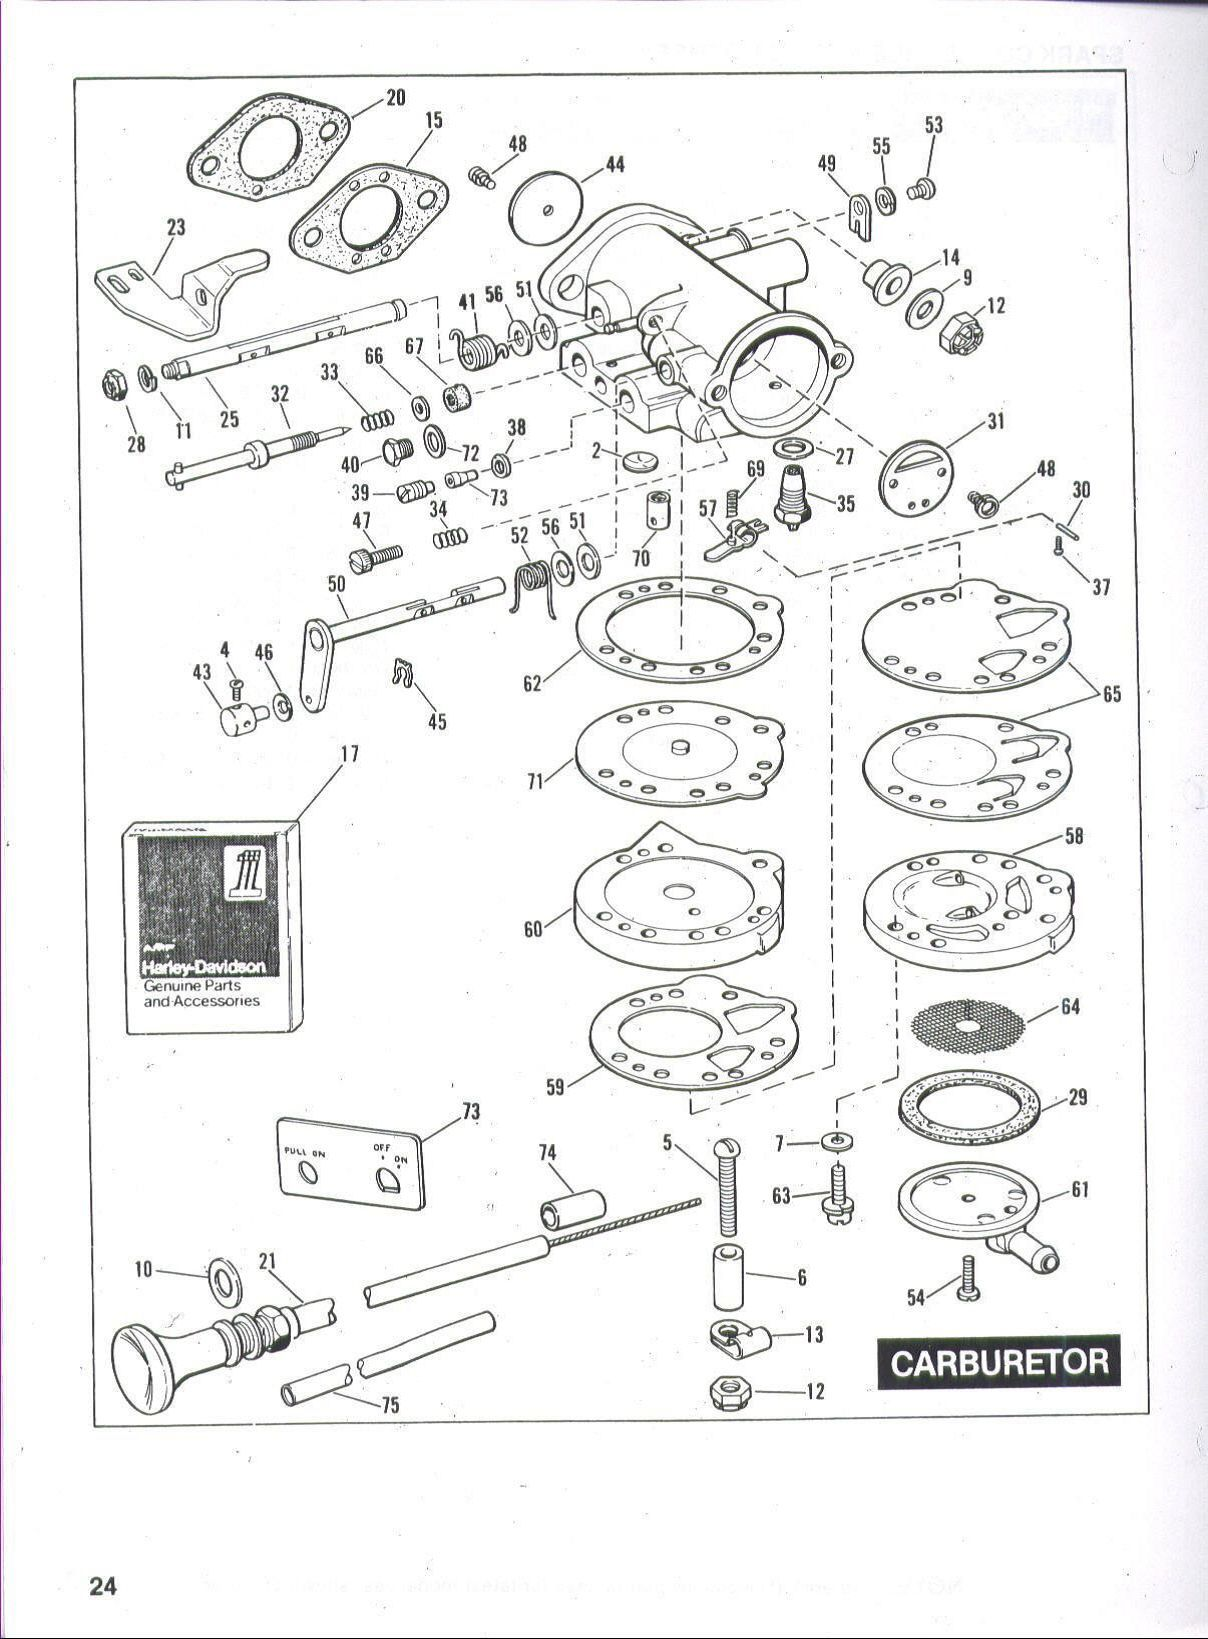 5176dbb44702a1adc4080edf7301936d harley davidson golf cart carburetor diagram utv stuff westinghouse golf cart wiring diagram at panicattacktreatment.co